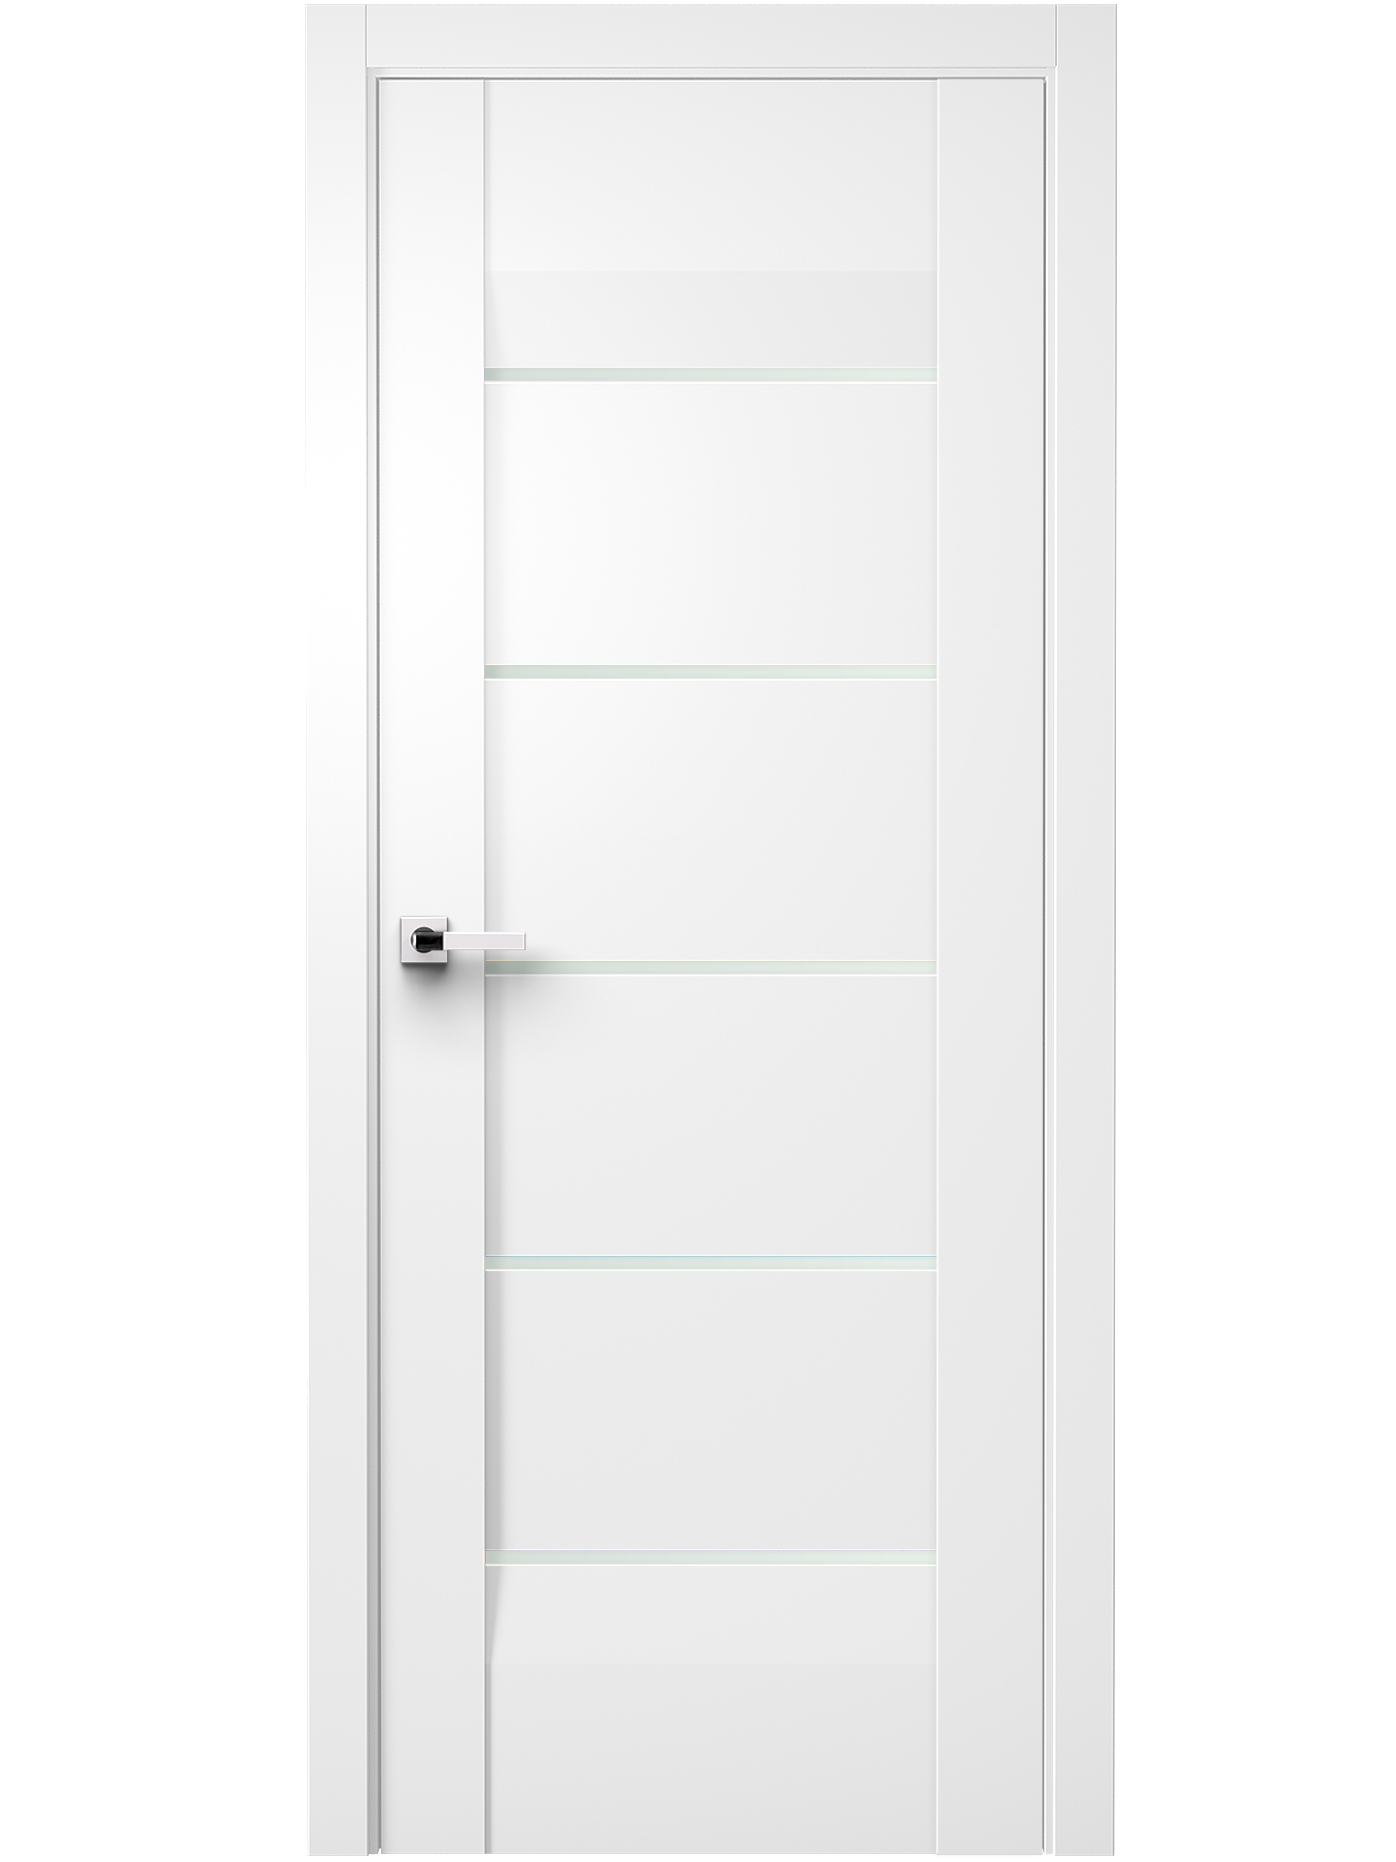 Image Forta Interior Door Soft Touch White/ Frosted Glass 0